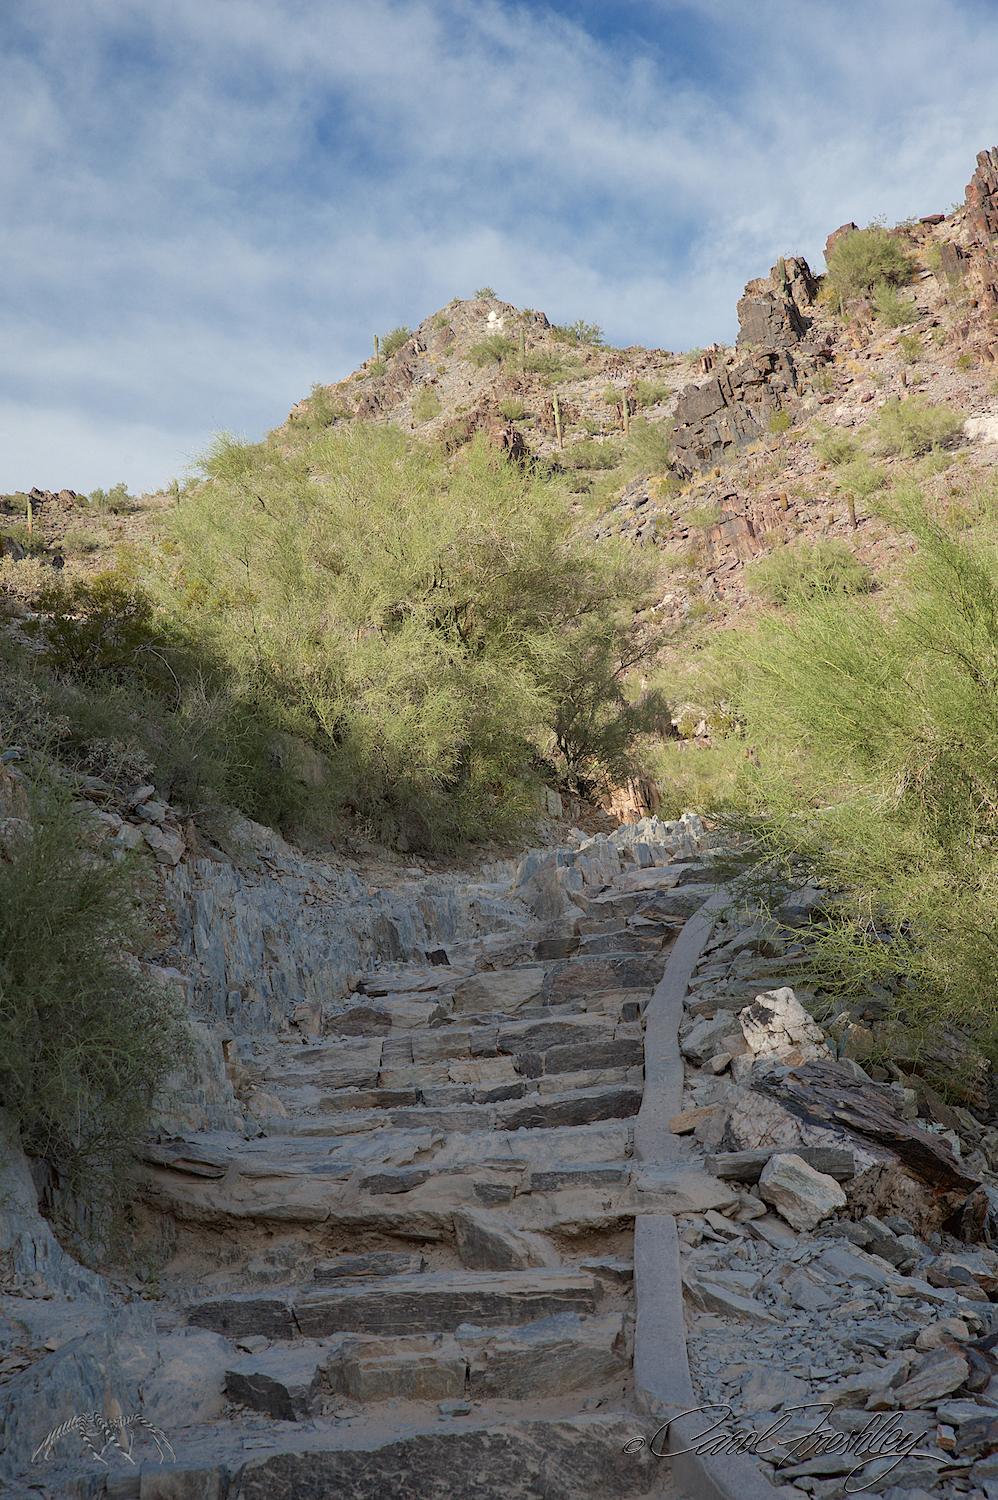 A few places on the trail have these uneven and sometimes loose rock steps. This is about the usual incline.